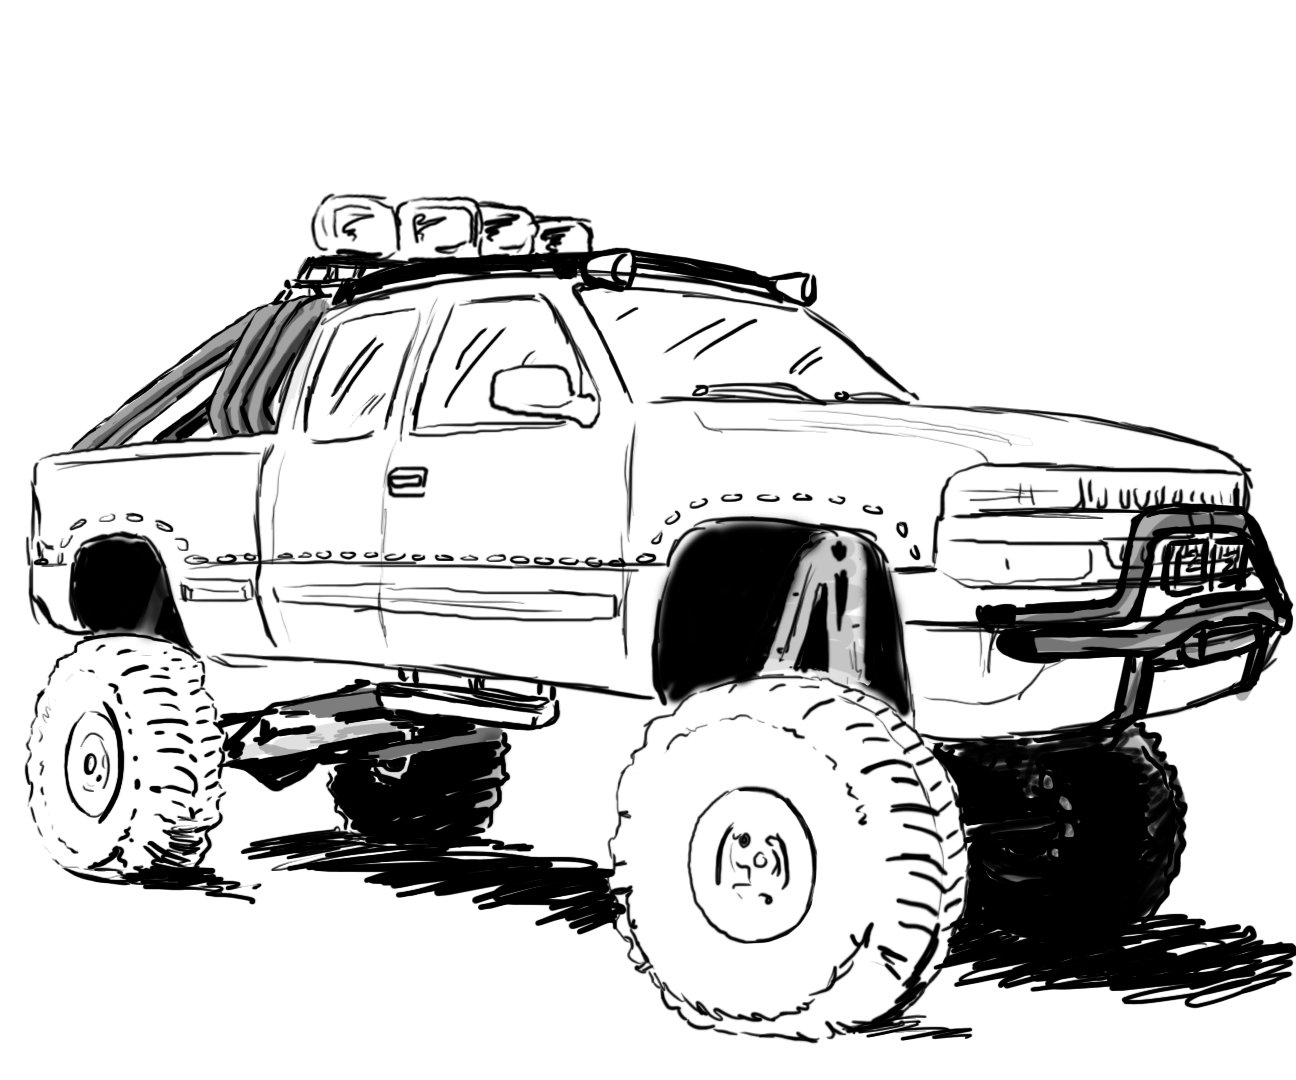 Drawn truck jacked up Outline chevy Lifted Chevy drawings